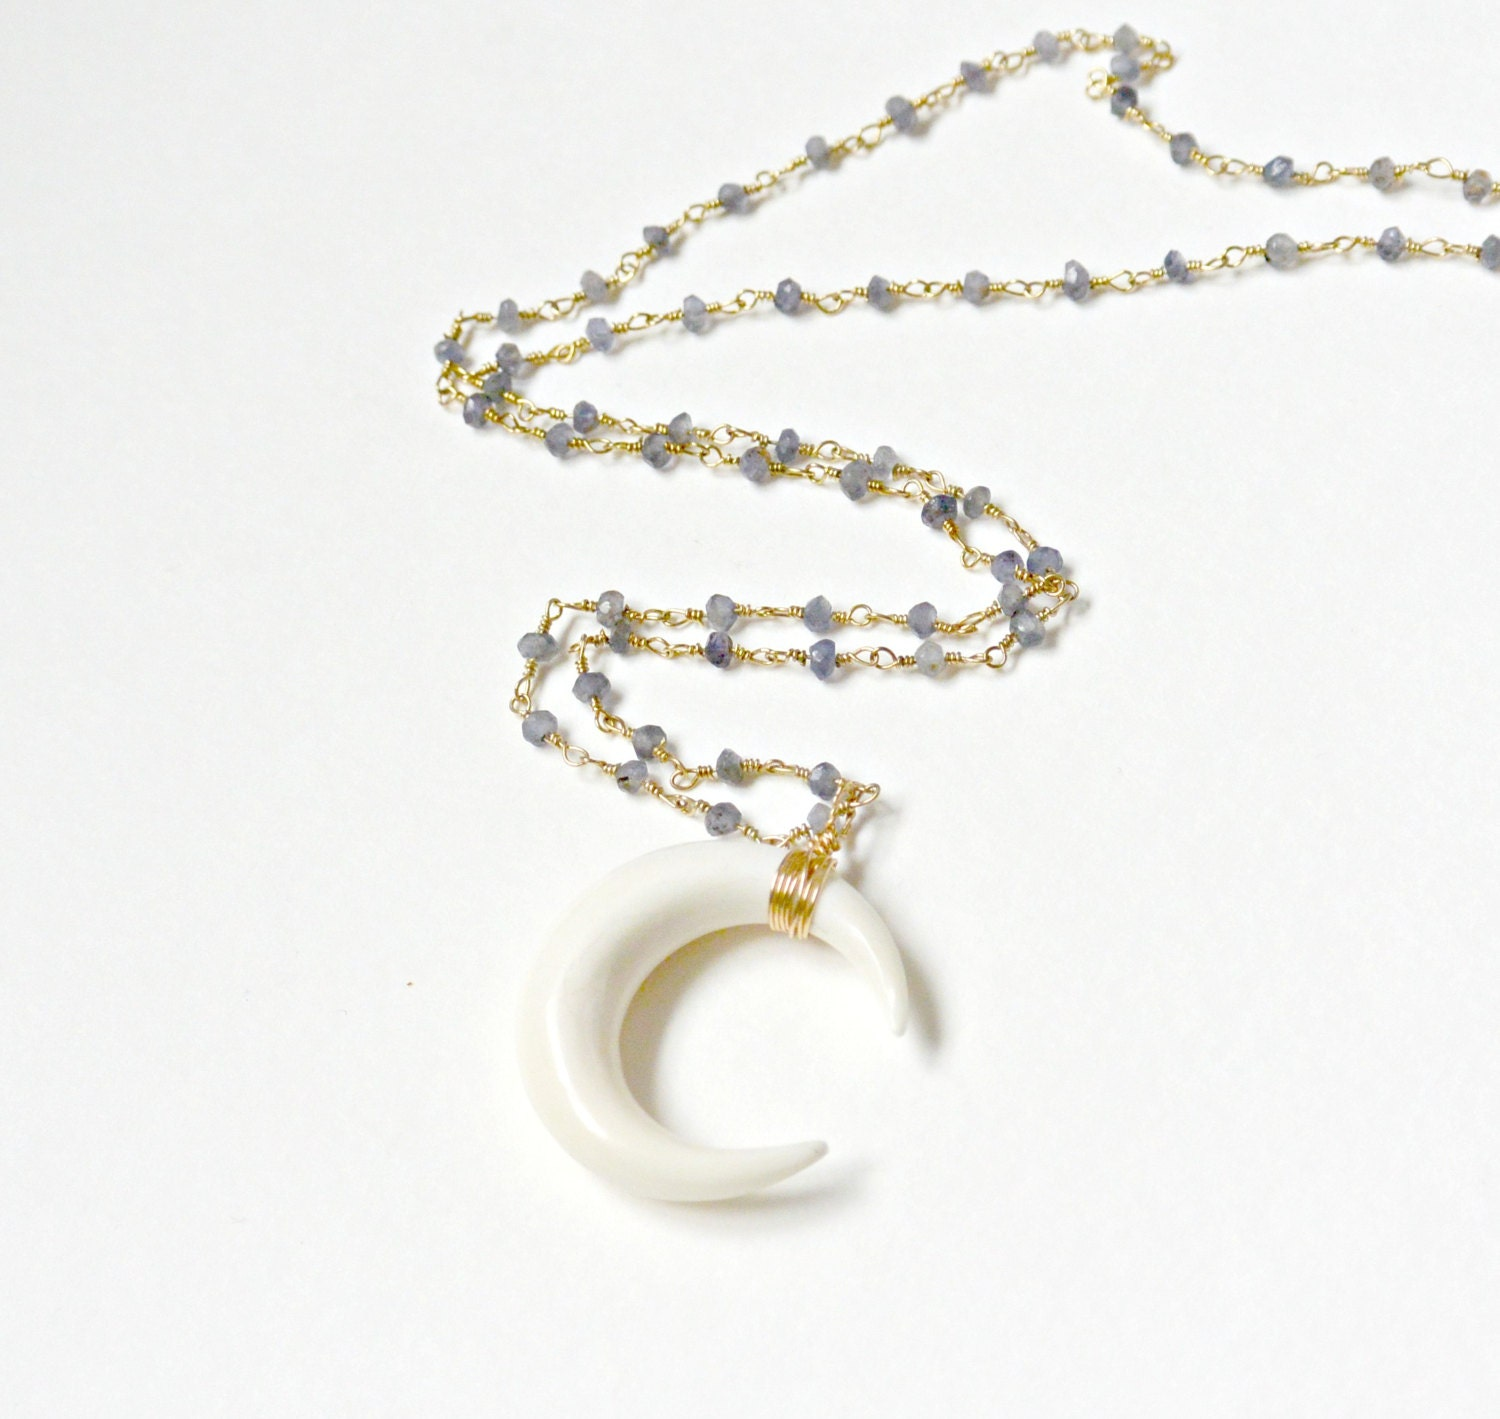 Crescent Horn Necklace: Sideways Double Horn Necklace Crescent Moon Necklace Carved